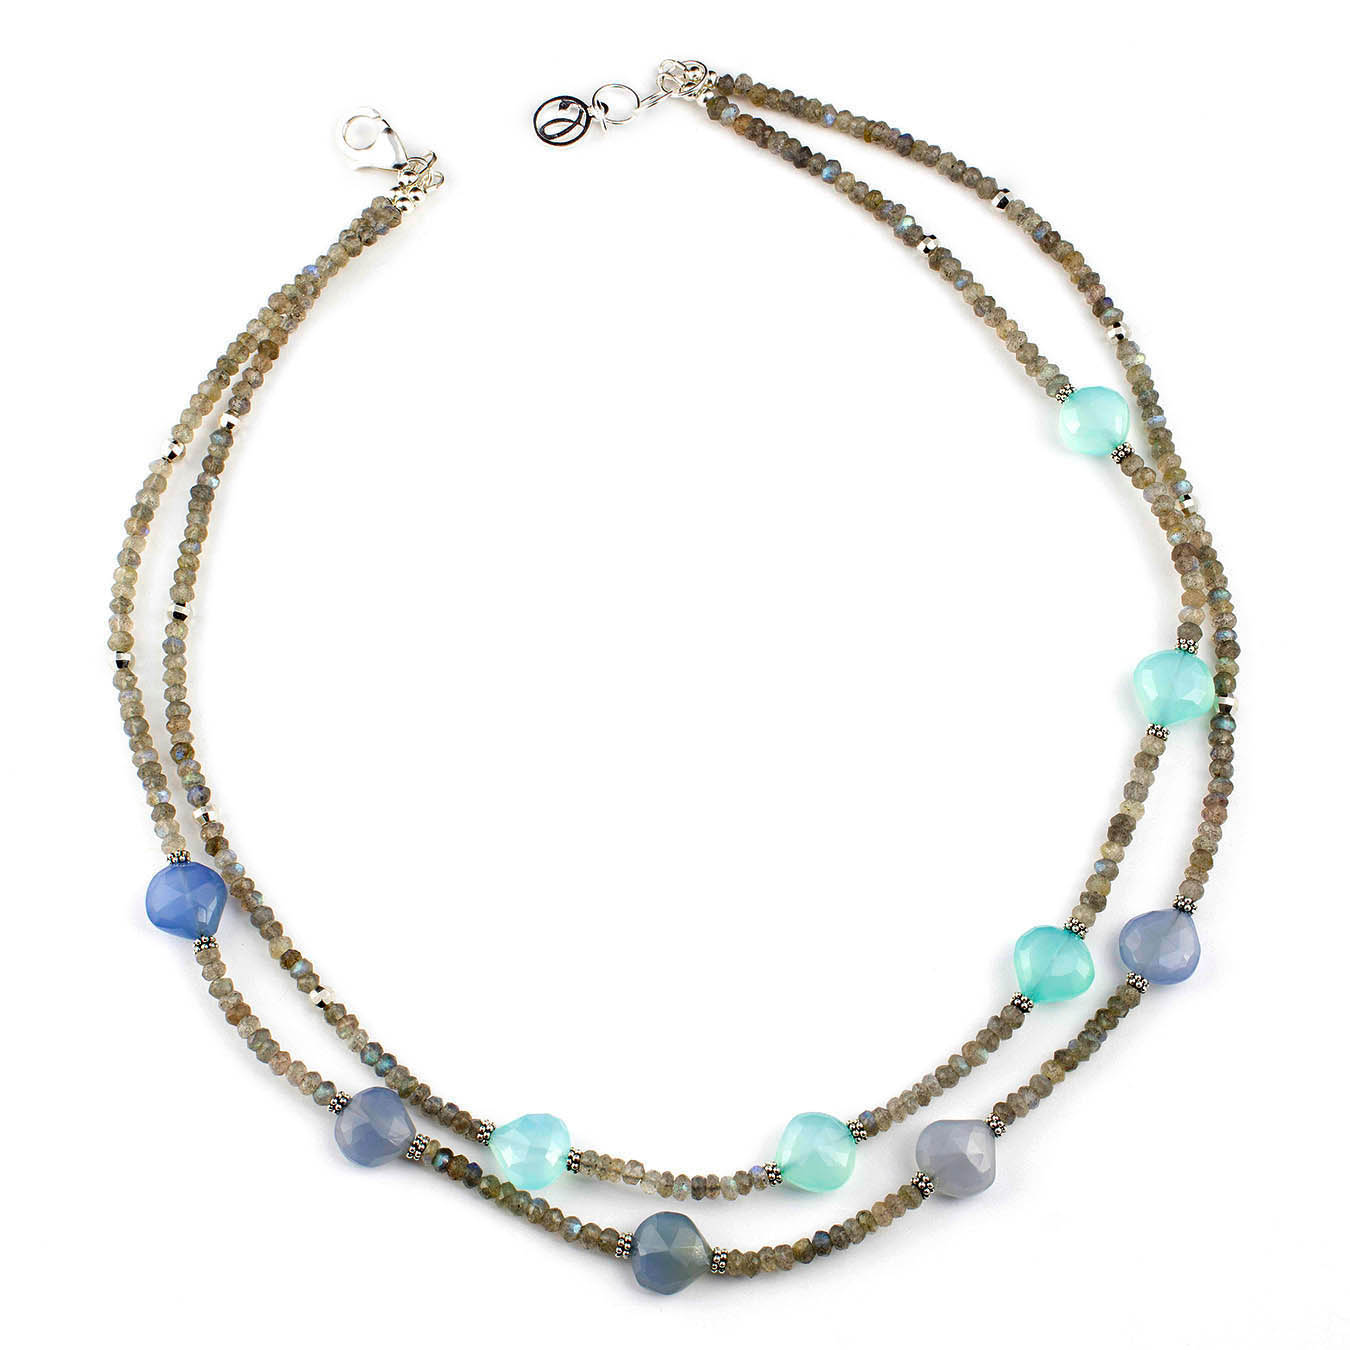 Artisan beaded jewelry made of labradorite and chalcedony gemstones